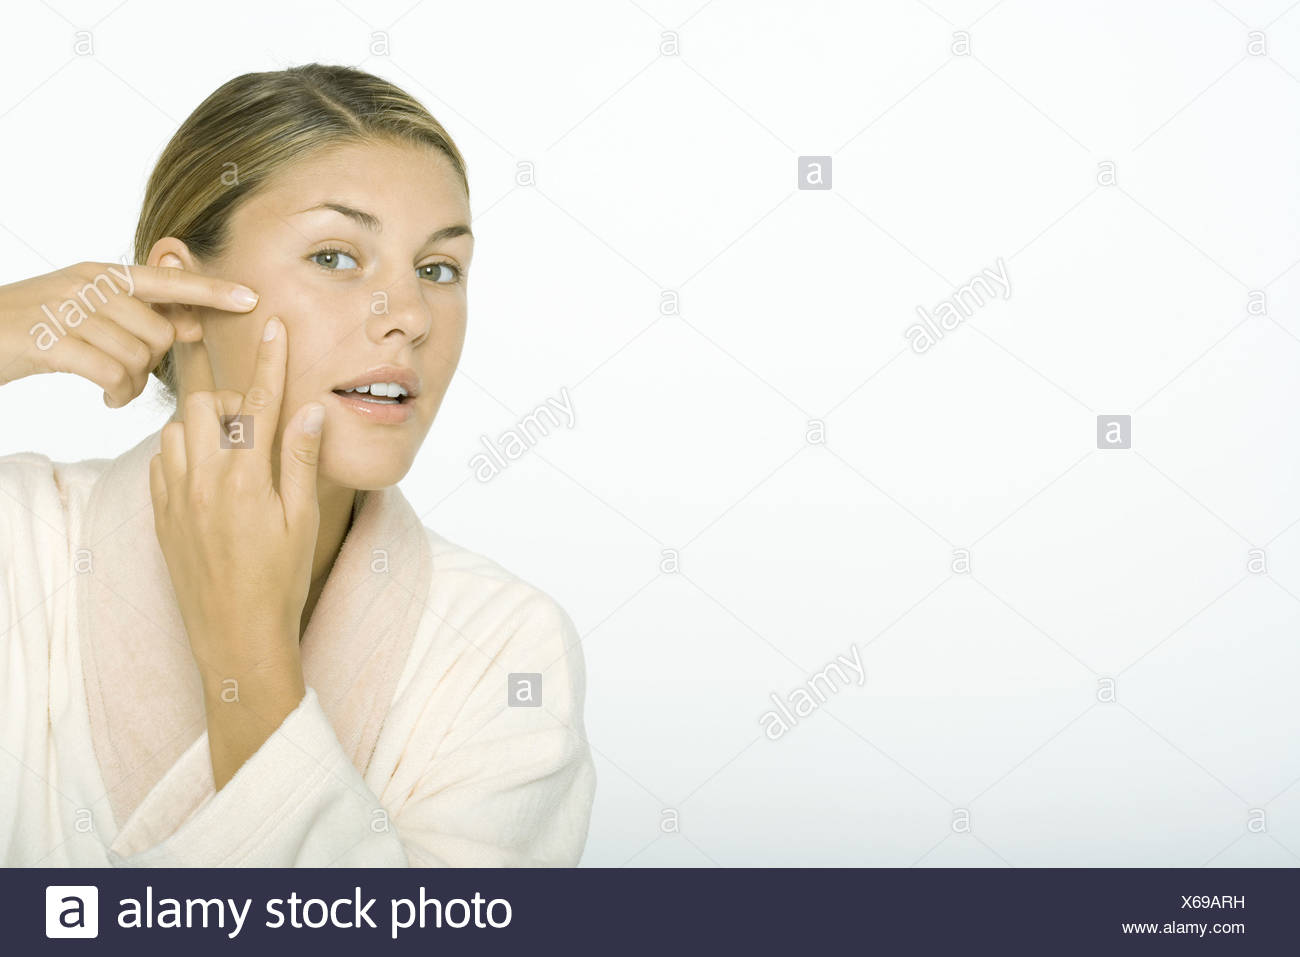 Young woman touching cheek with fingers - Stock Image